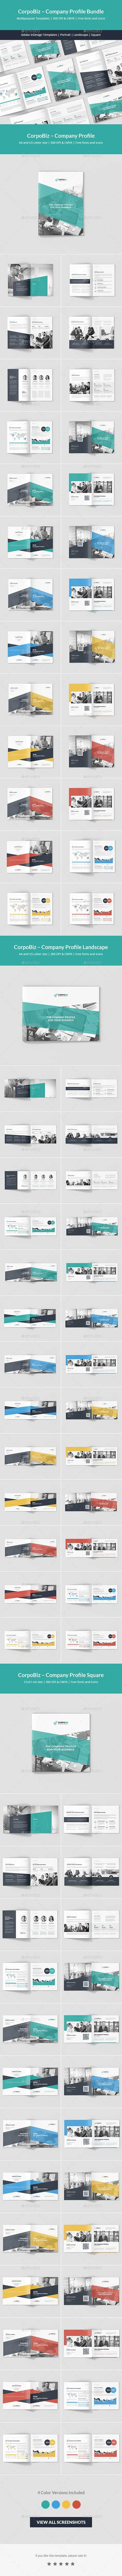 GR - CorpoBiz – Business and Corporate Company Profile Brochures Bundle 3 in 1 21960331